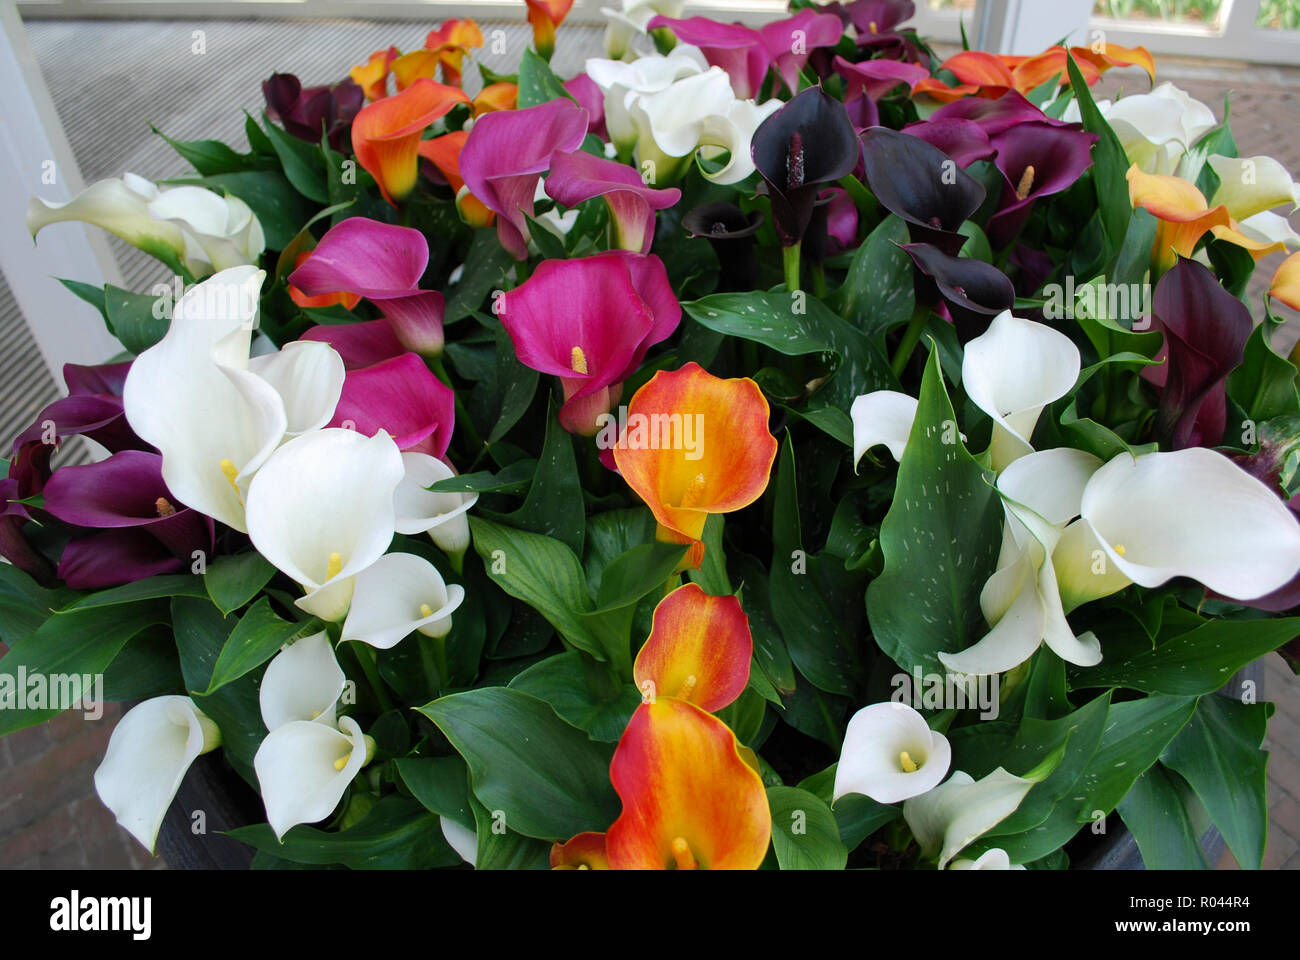 Bouquet of multi color callas (orange, purple, white, red, yellow). Spring time in Netherlands. - Stock Image